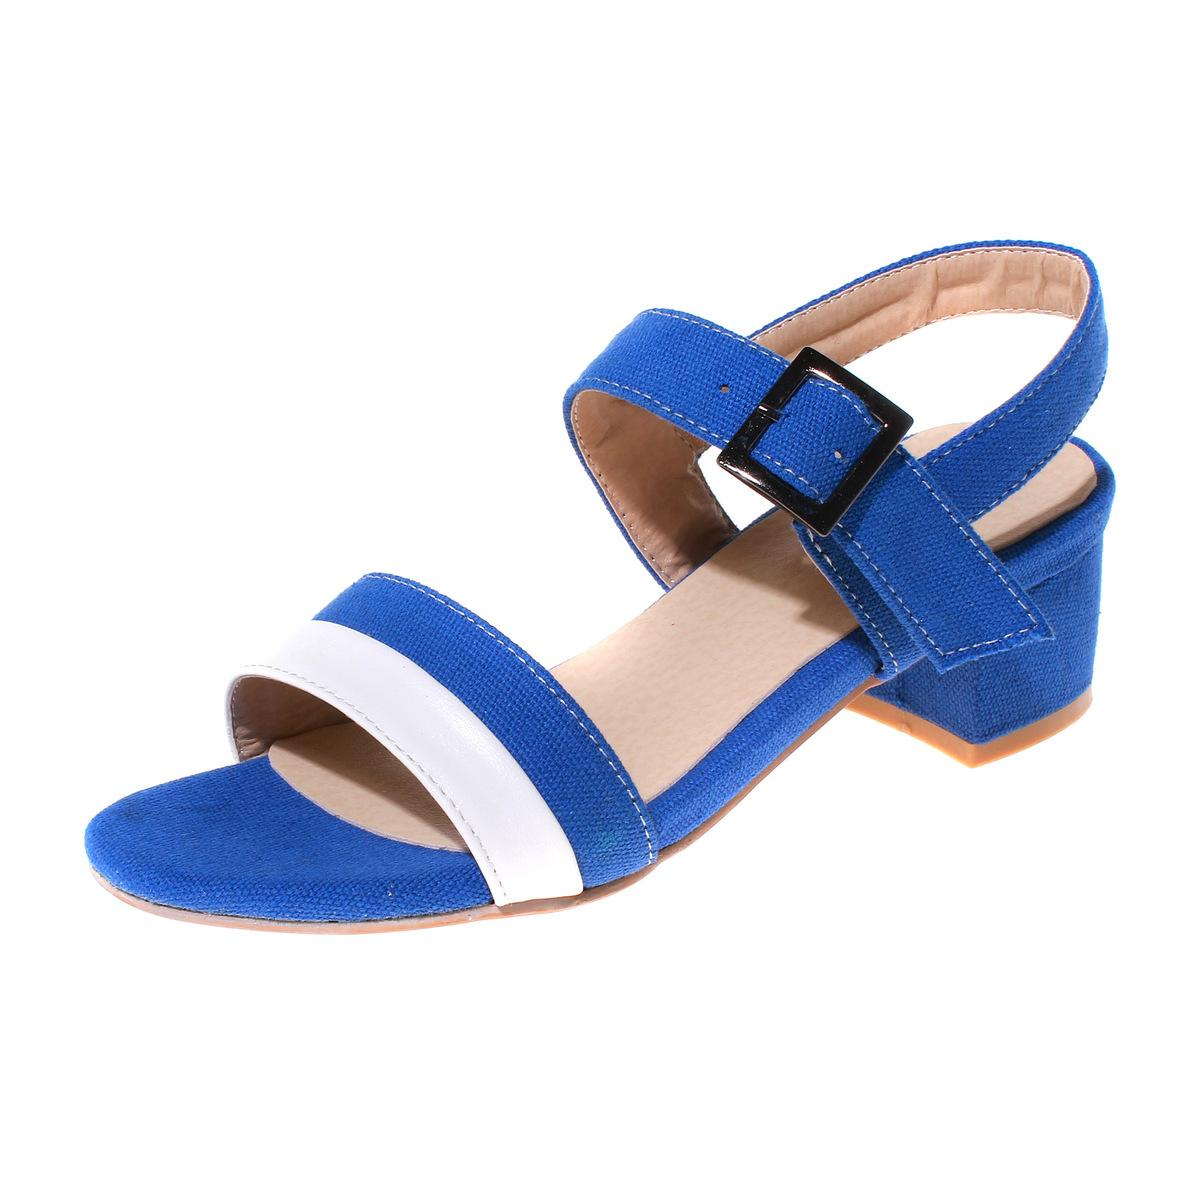 03bec98e815f10 Women Shoes Low Summer New Color Matching Simple Fashion 33 42 Code Women S Black  Blue Teal Sandals Markdown Sale White Sandals Wedge Heels From Iwalkers07